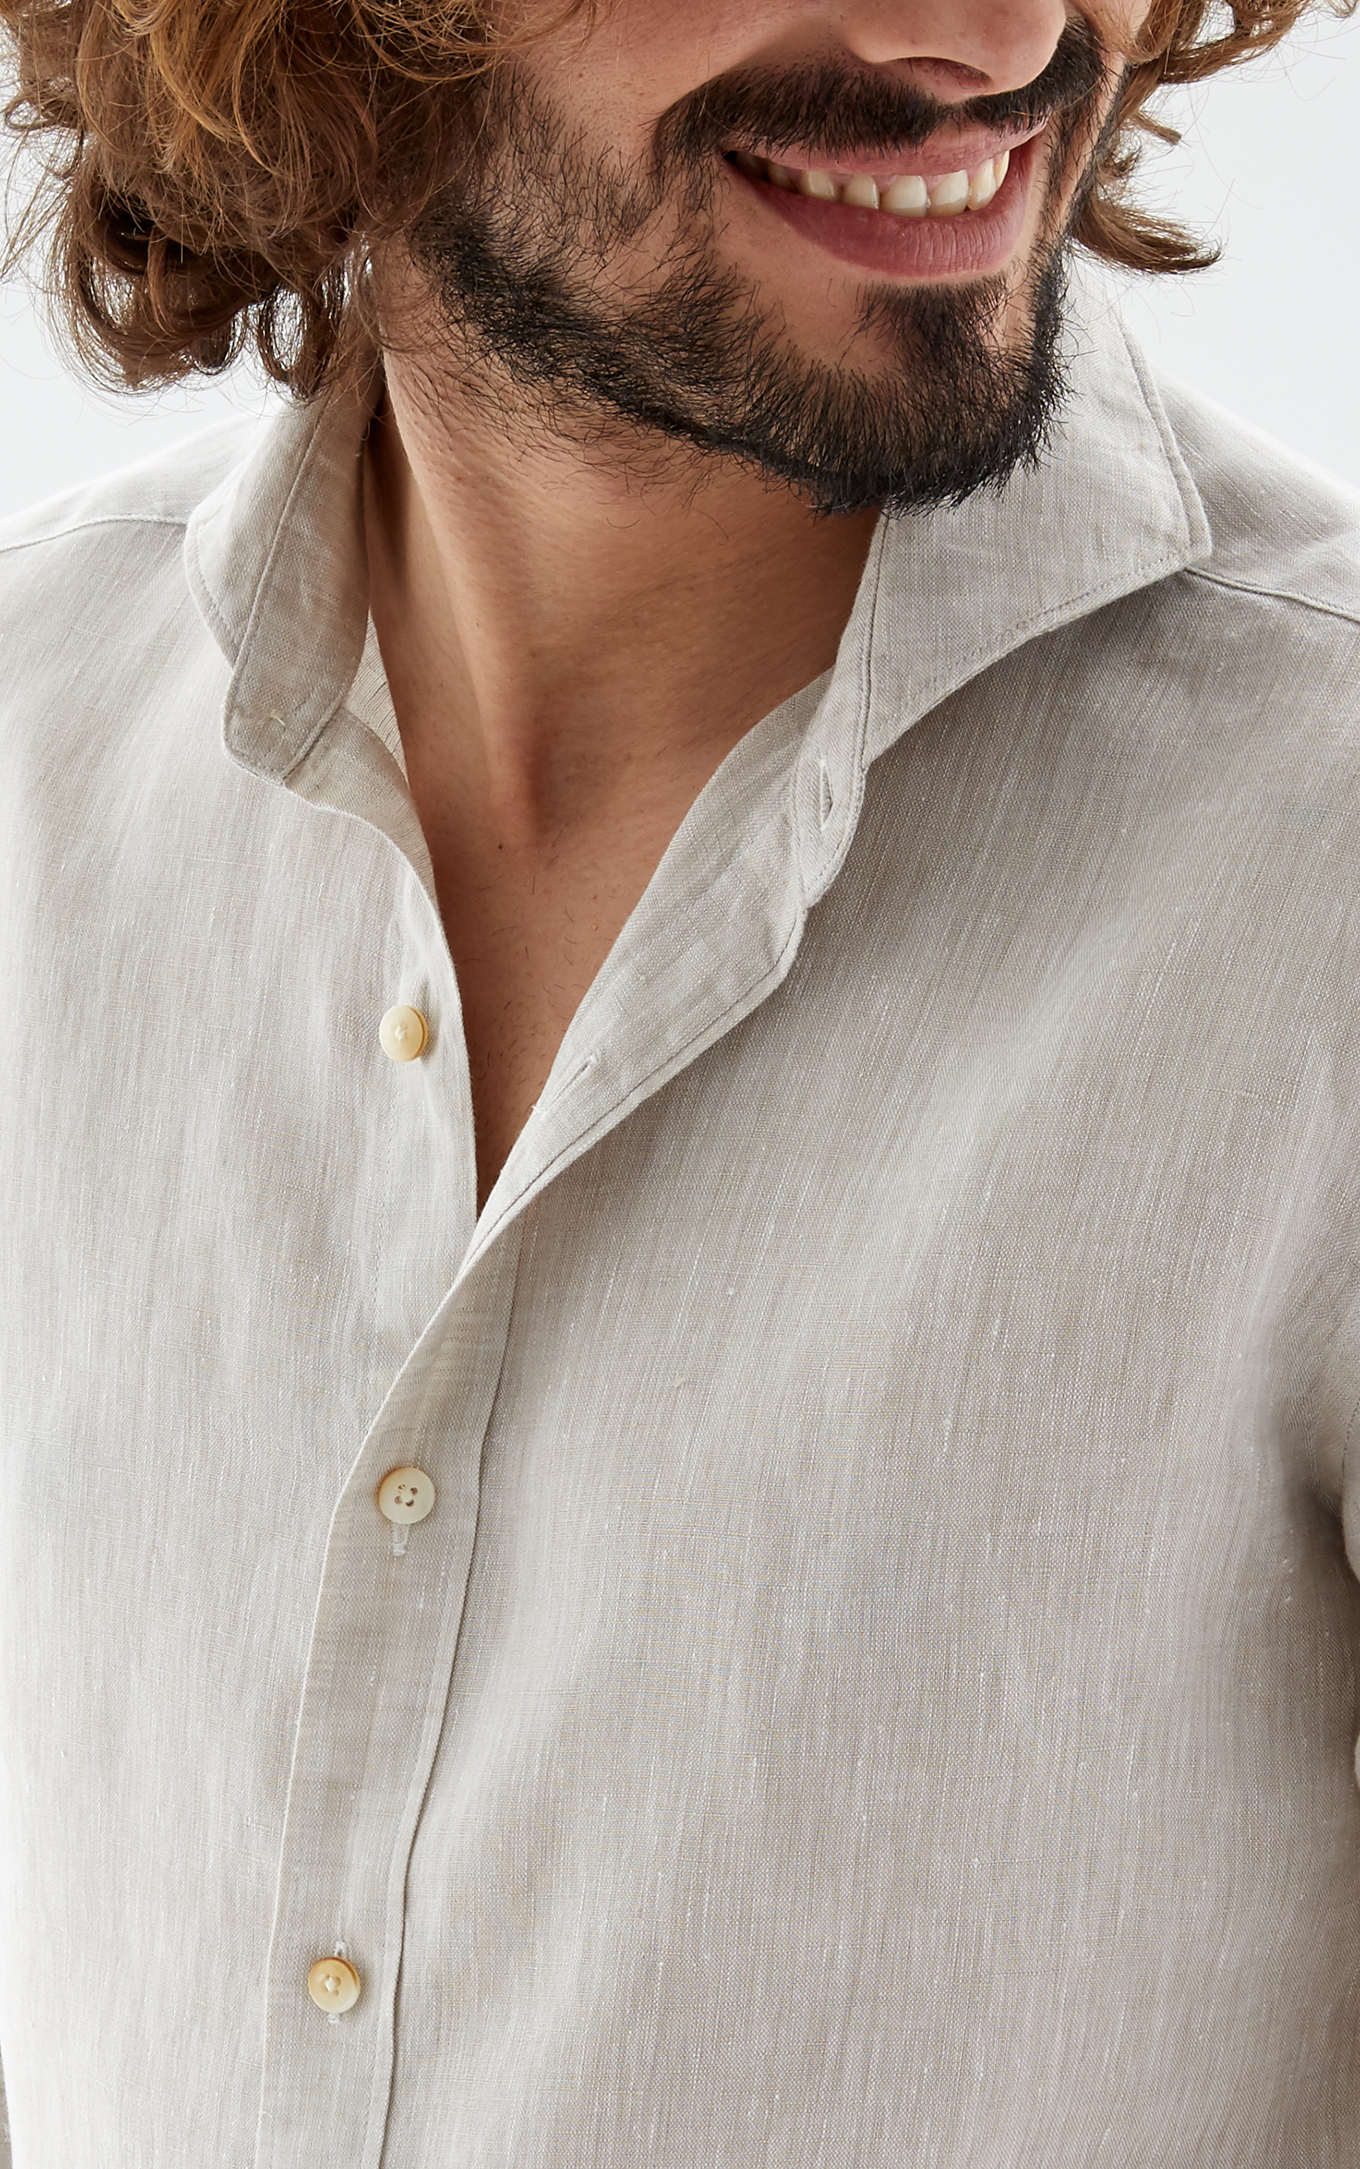 Shirt Beige Casual Man